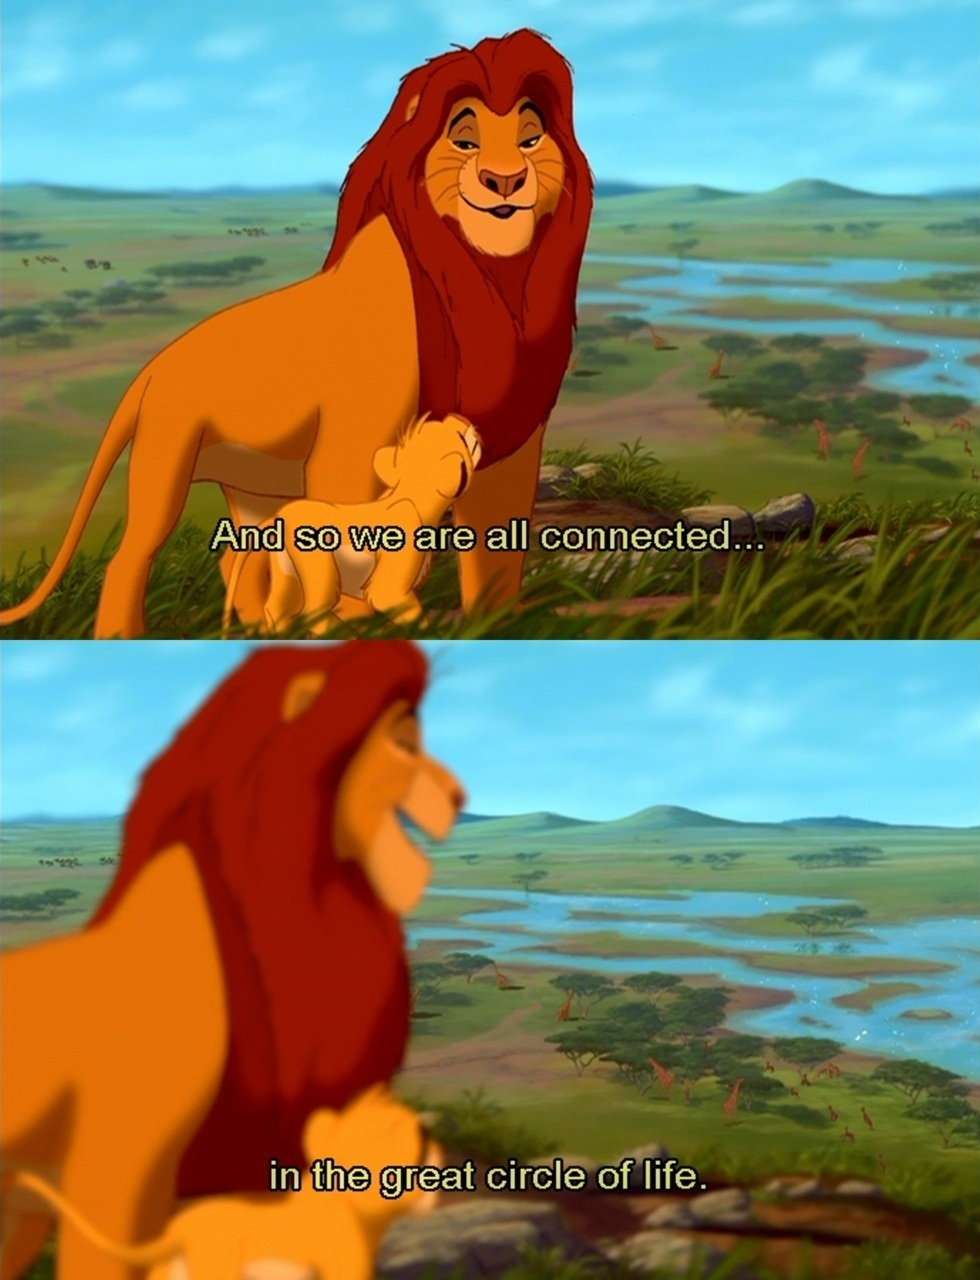 Quotes - The Lion King Photo (22918591) - Fanpop